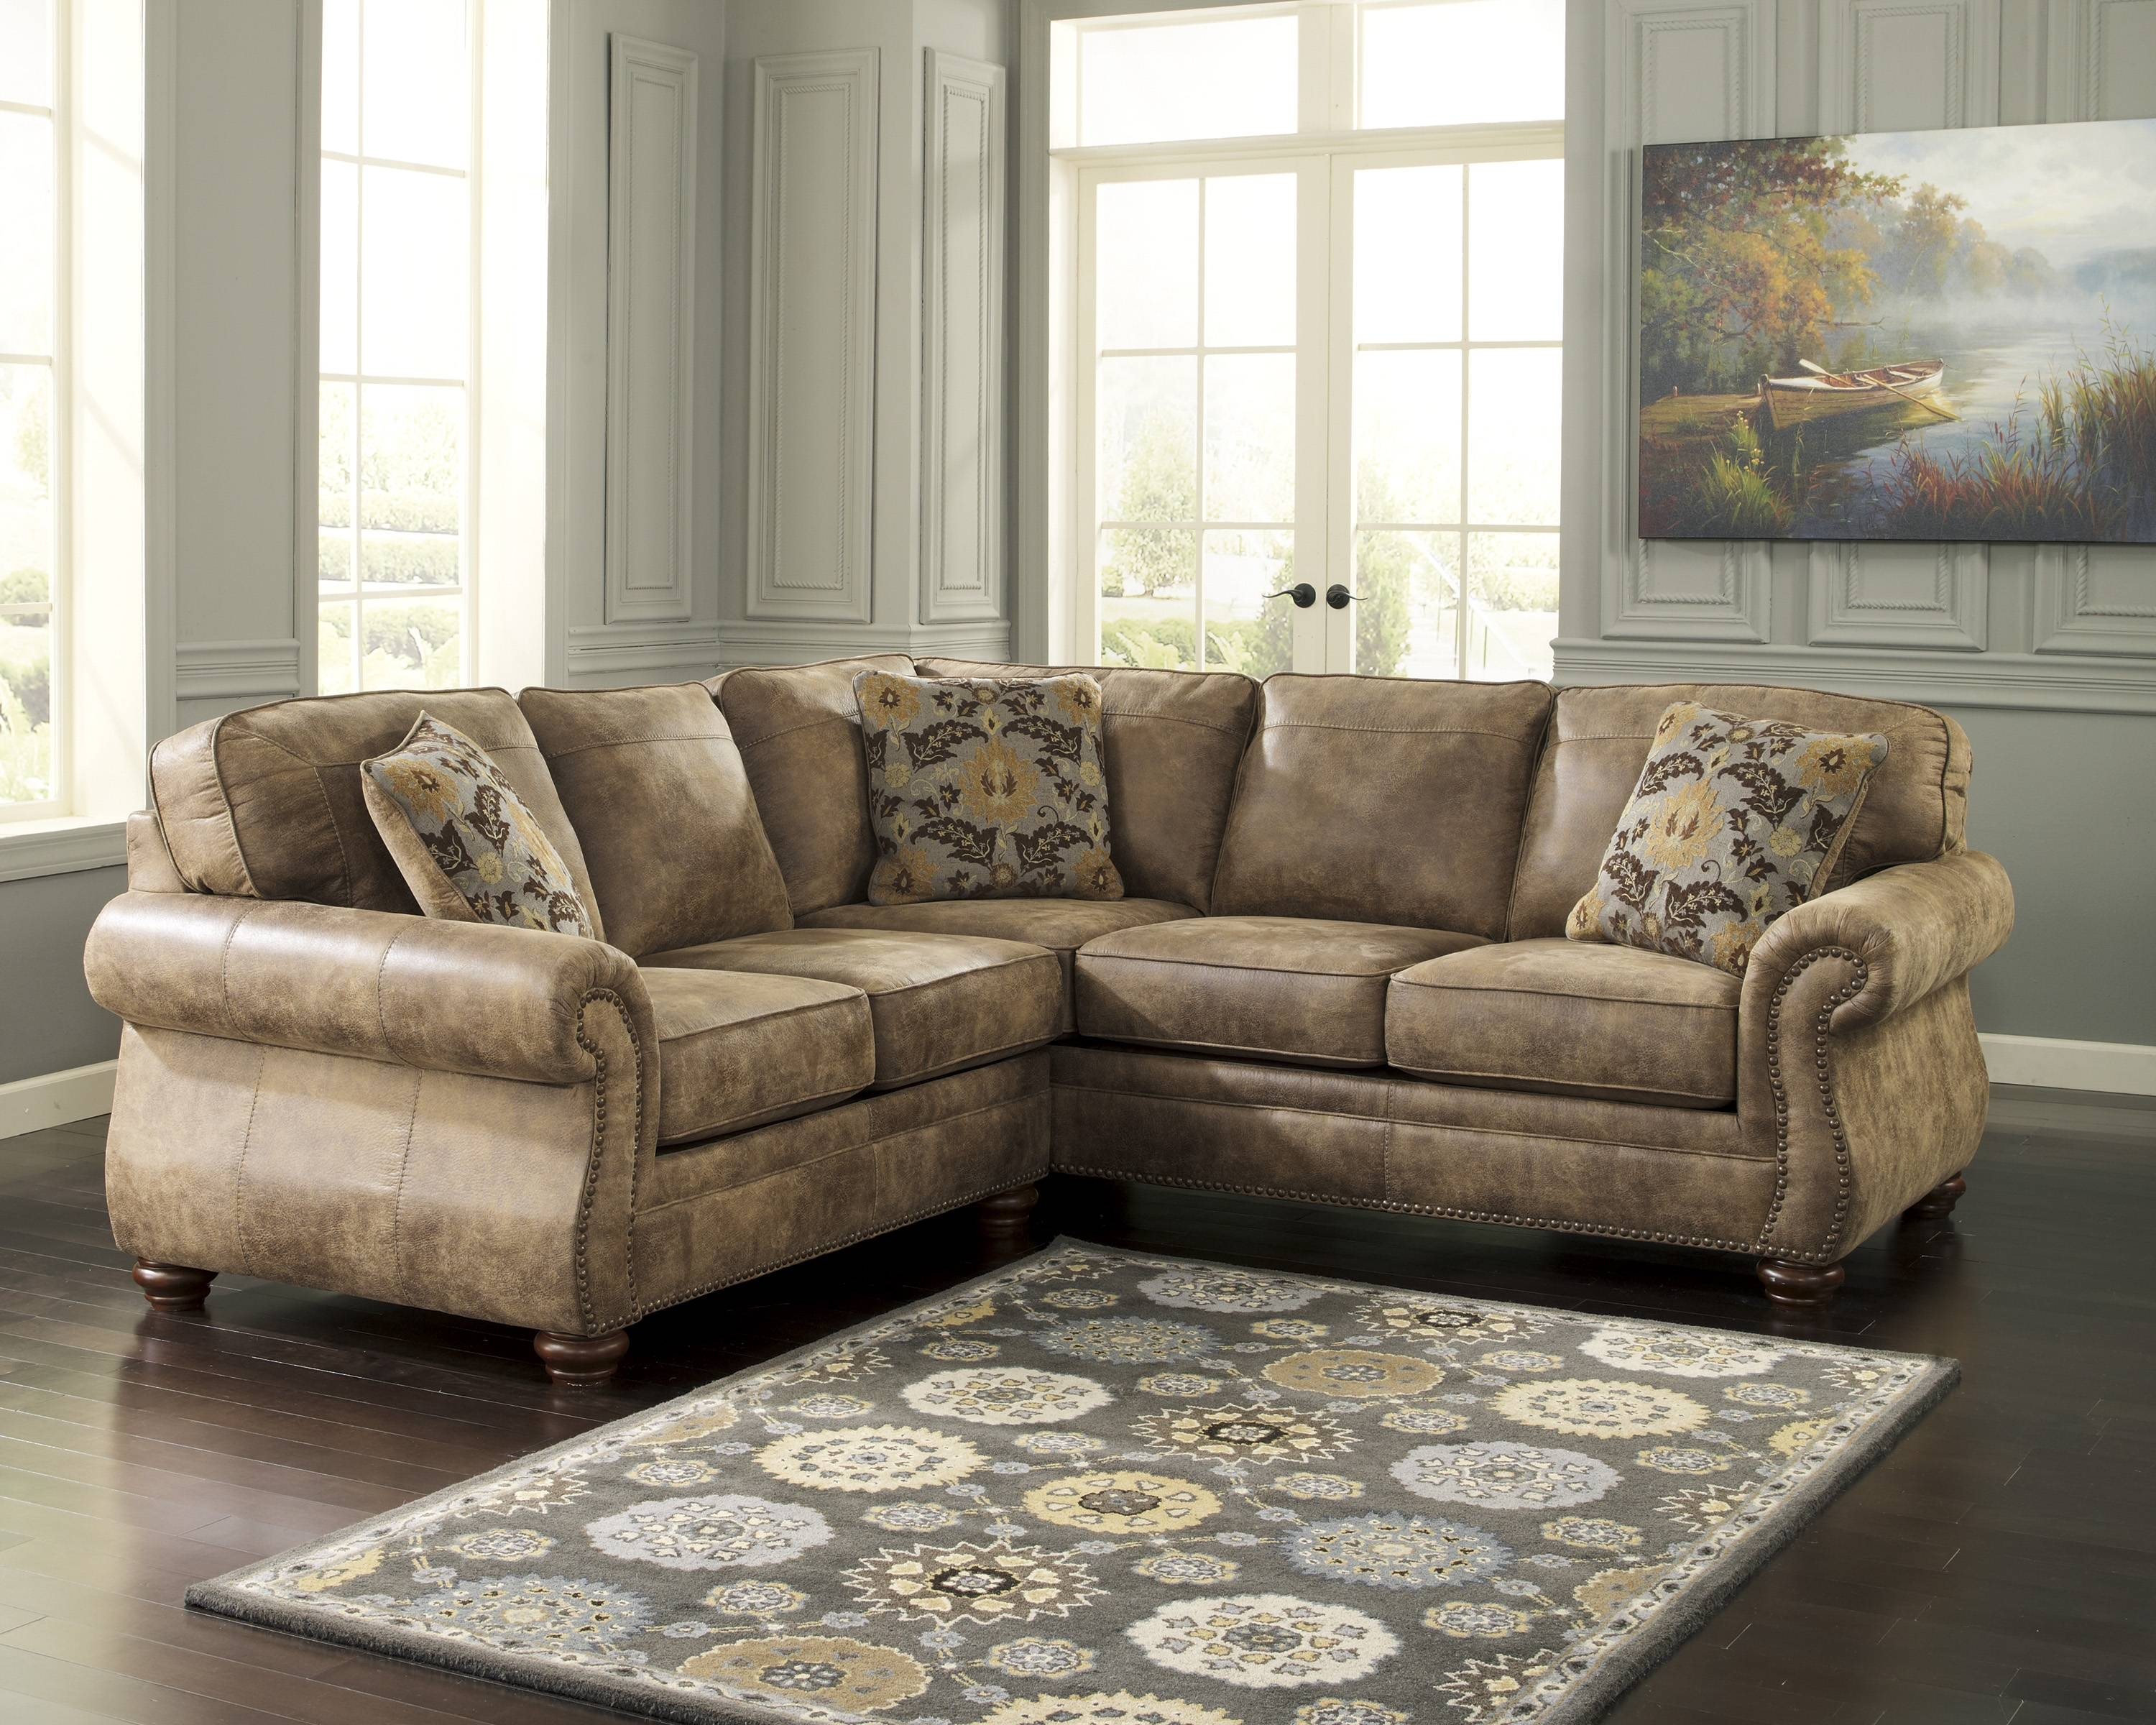 Top 30 of Classic Sectional Sofas